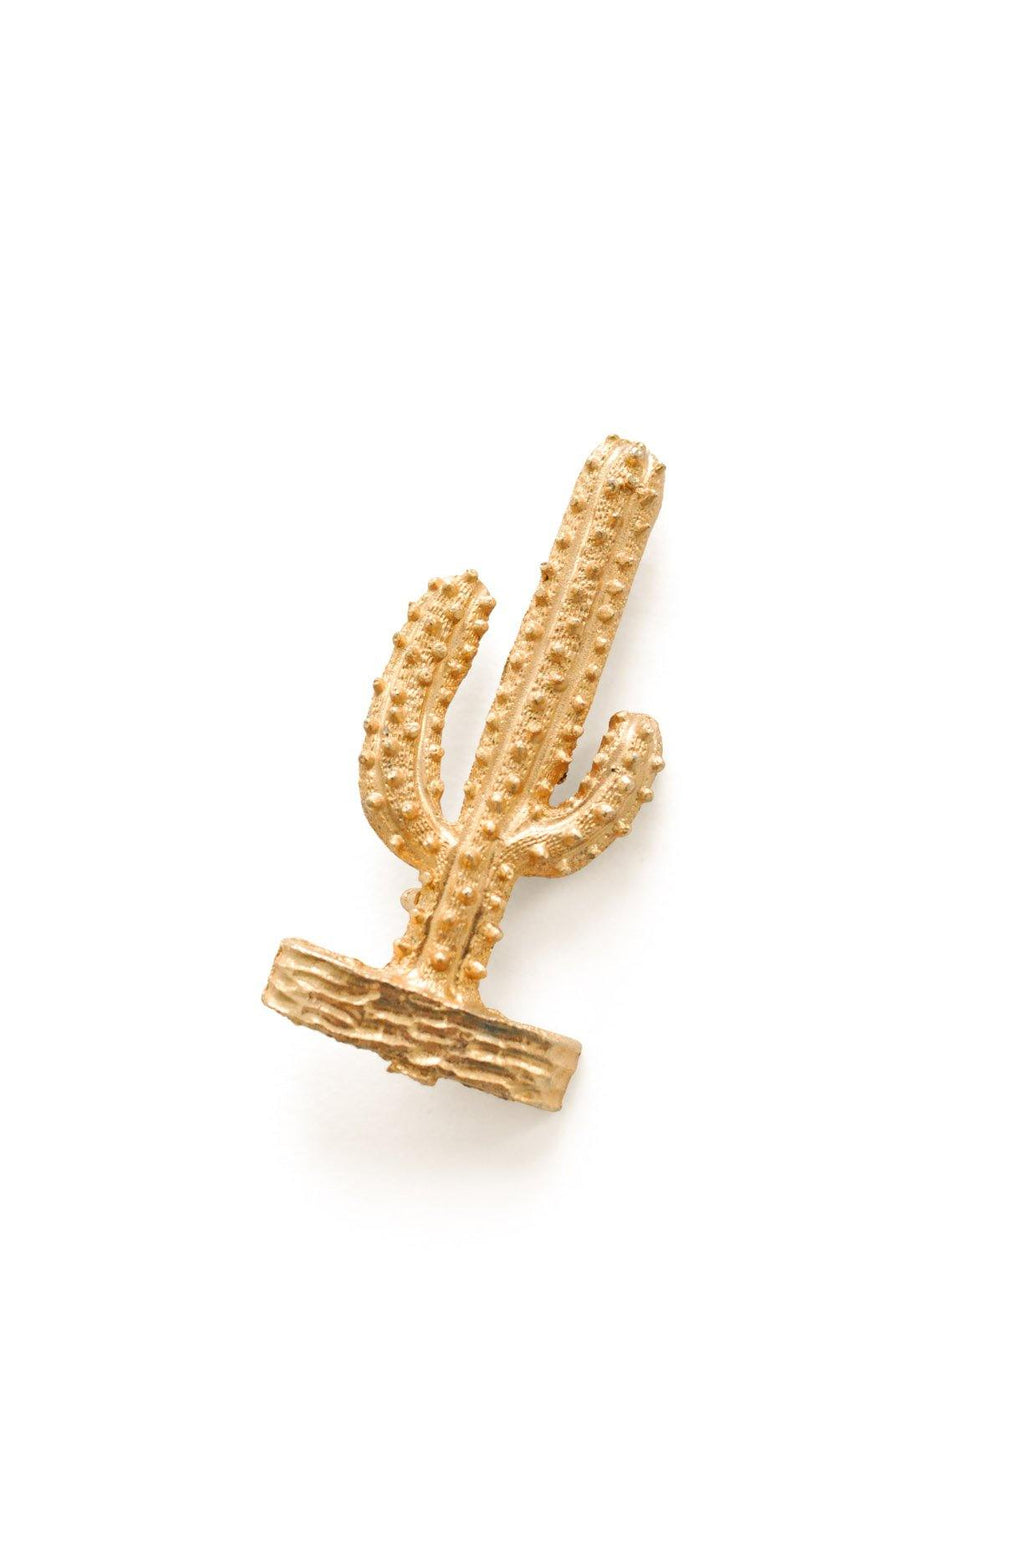 Gold Cactus Brooch